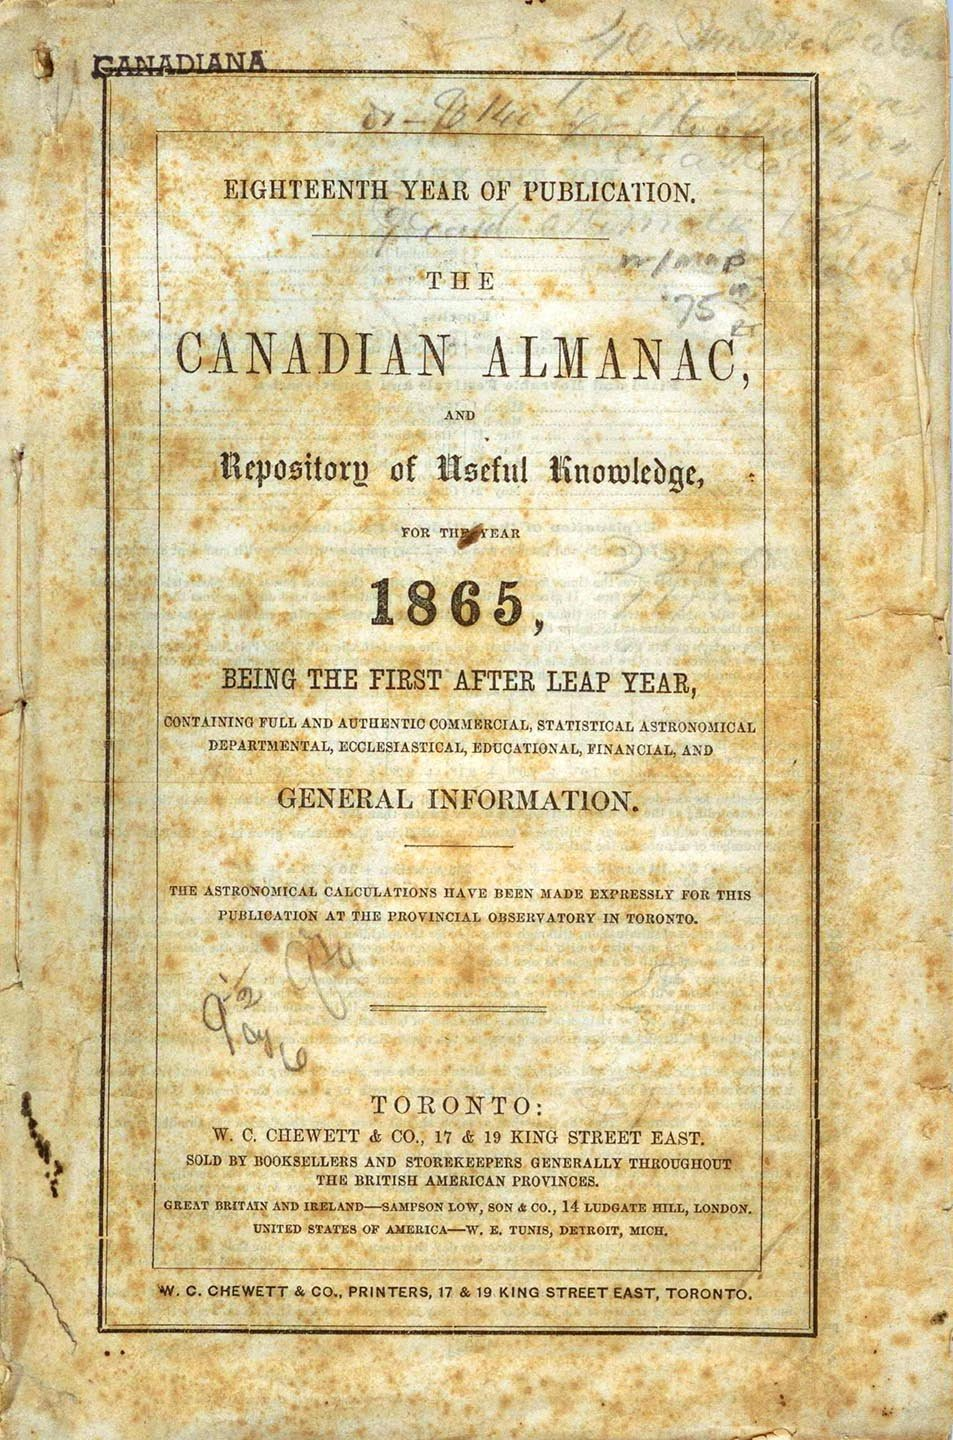 The Canadian Almanac, and Repository of Useful Knowledge for the Year 1865